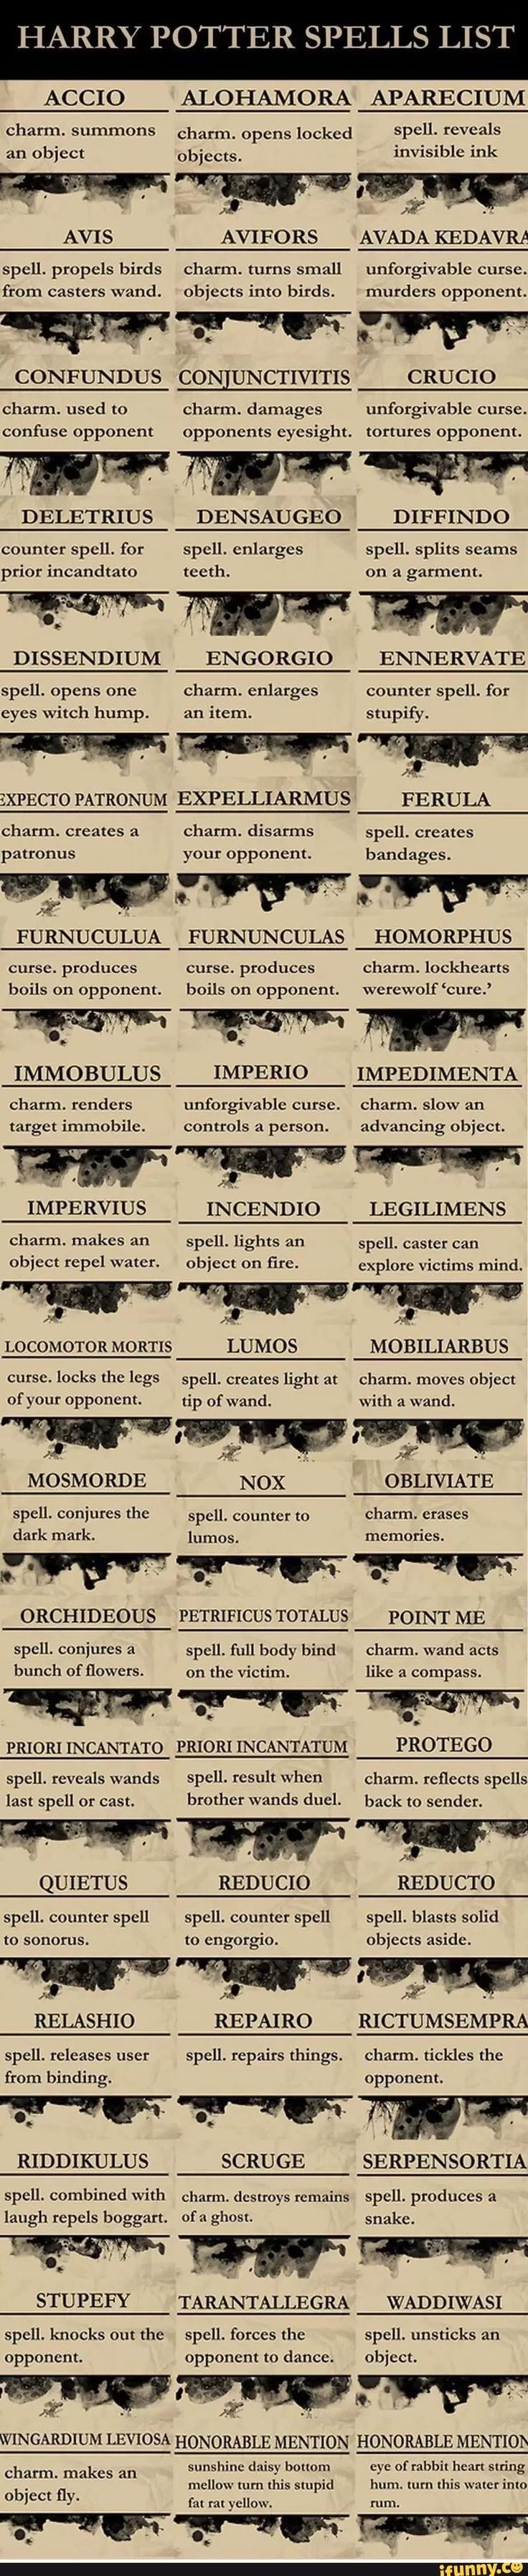 Harry Potter spells